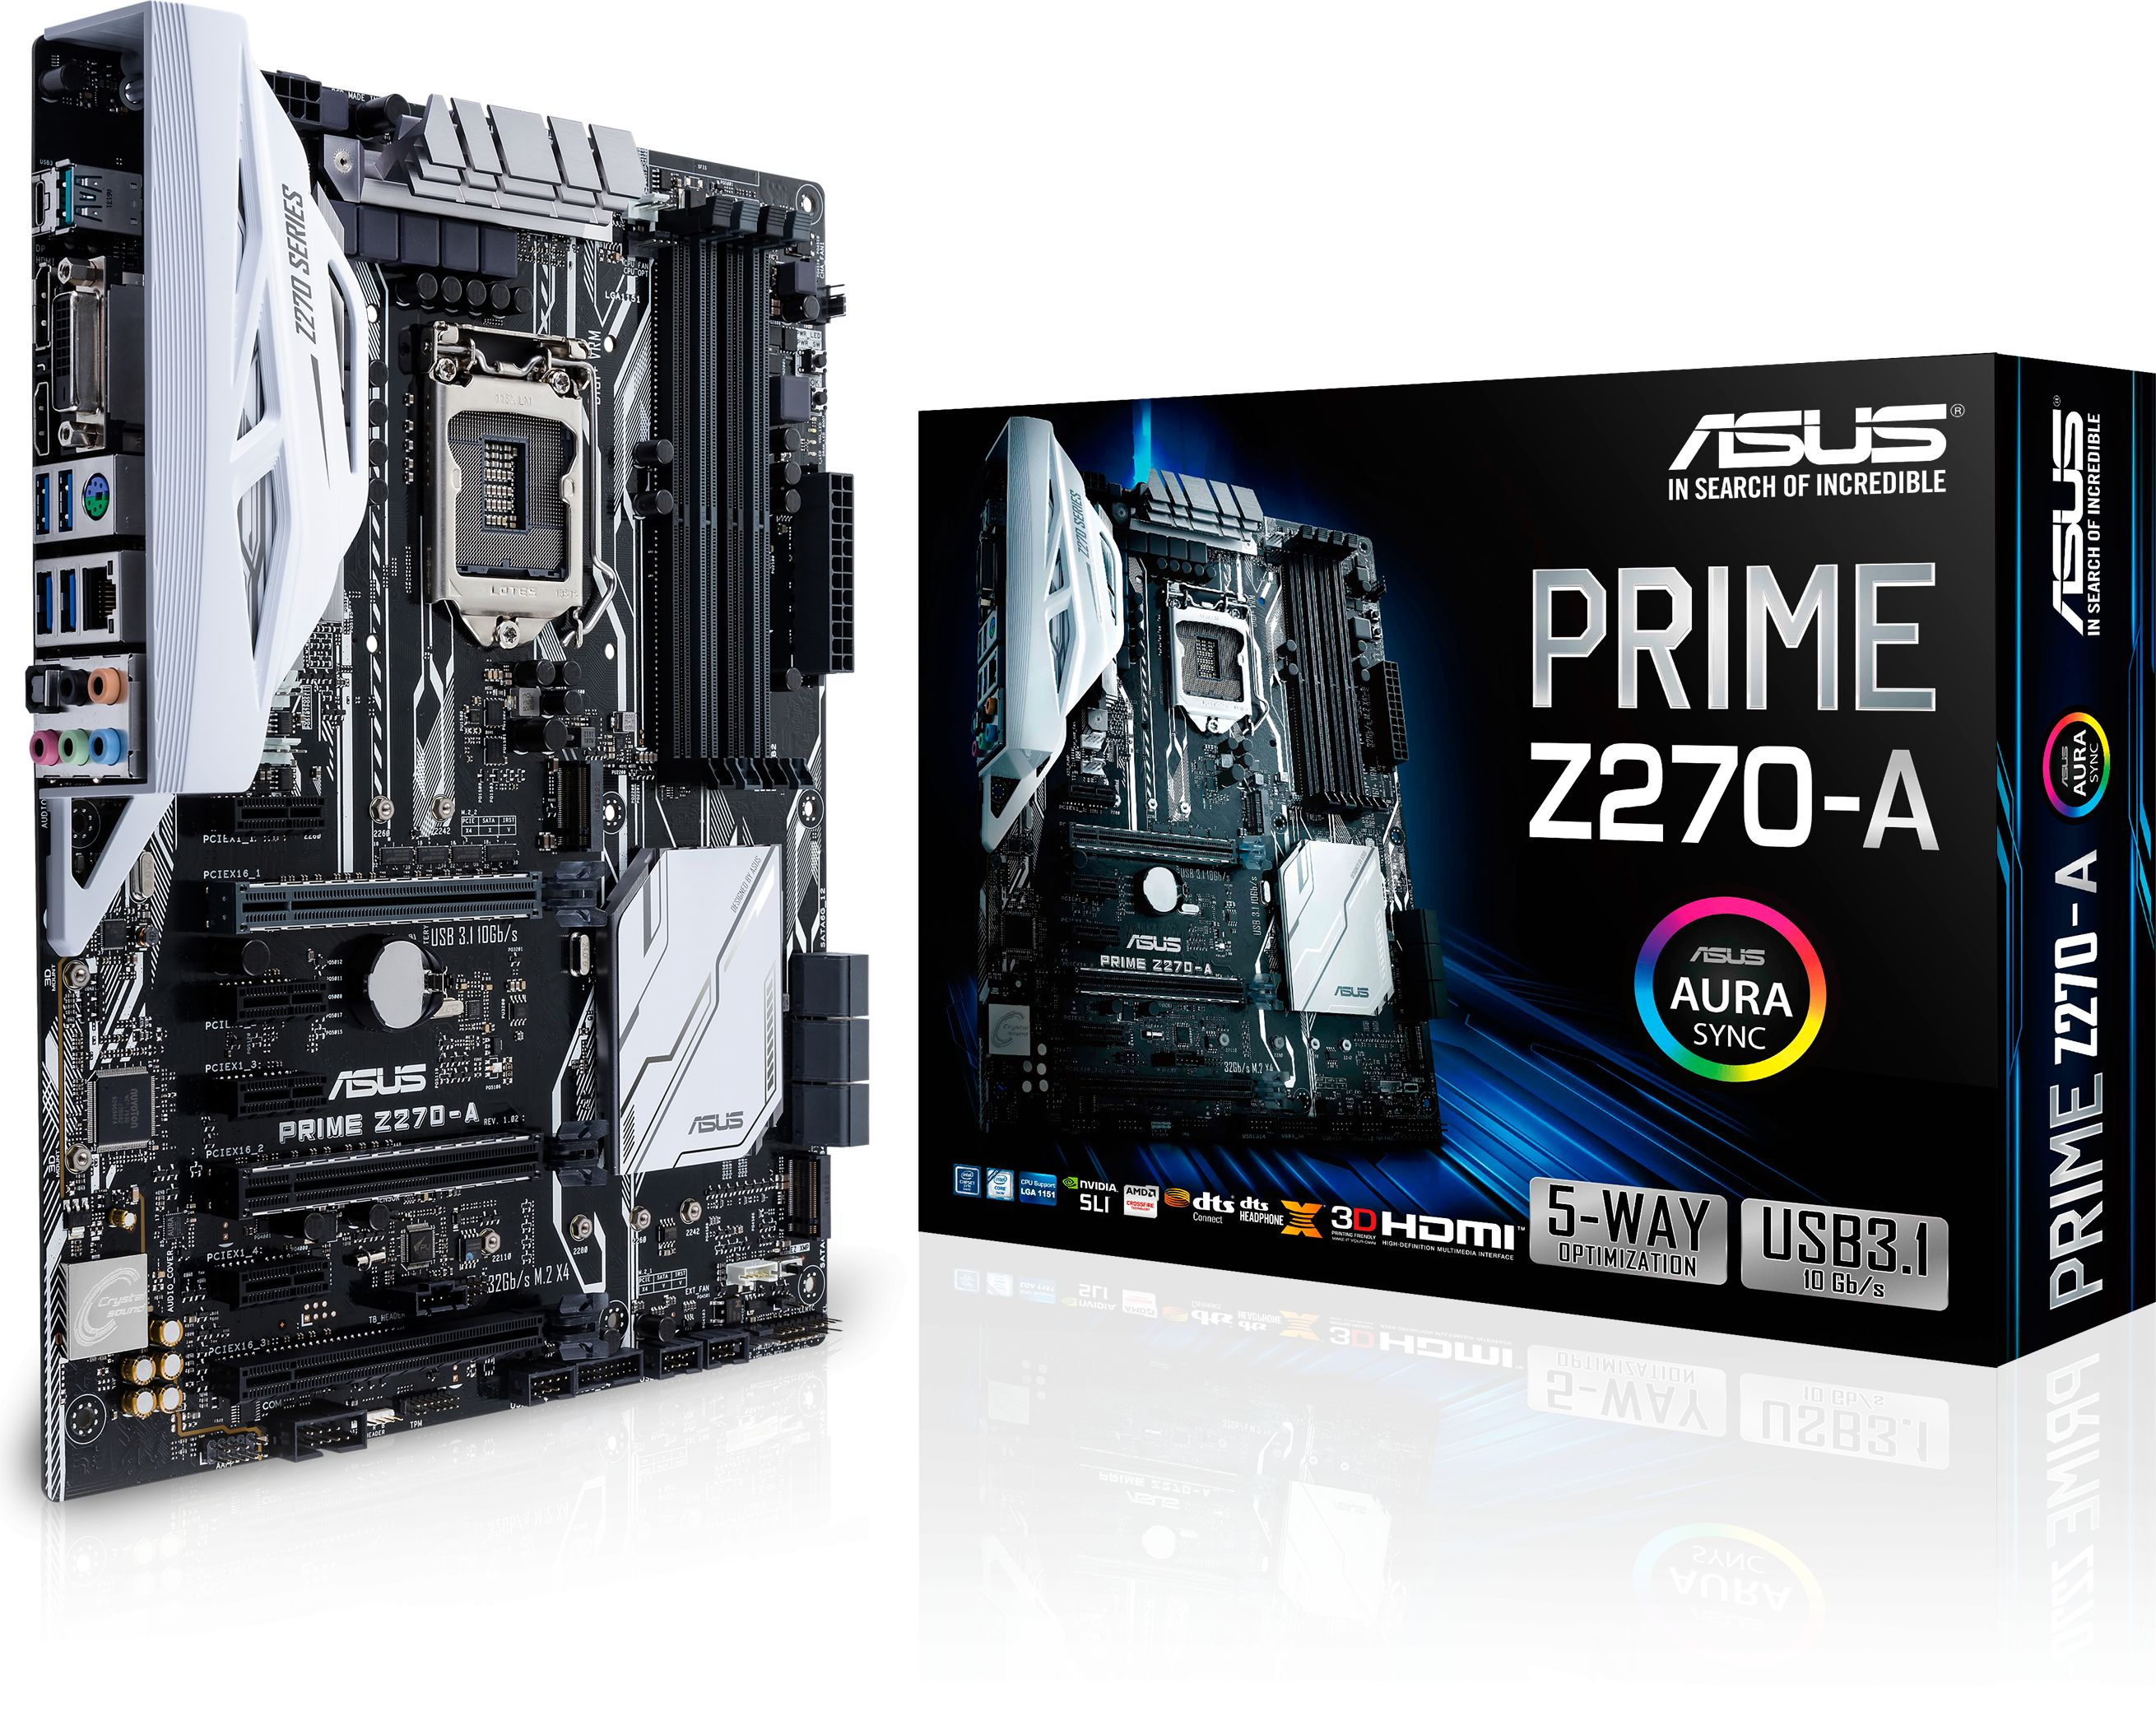 Asus PRIME Z270-A LGA 1151 for mining 7 video cards